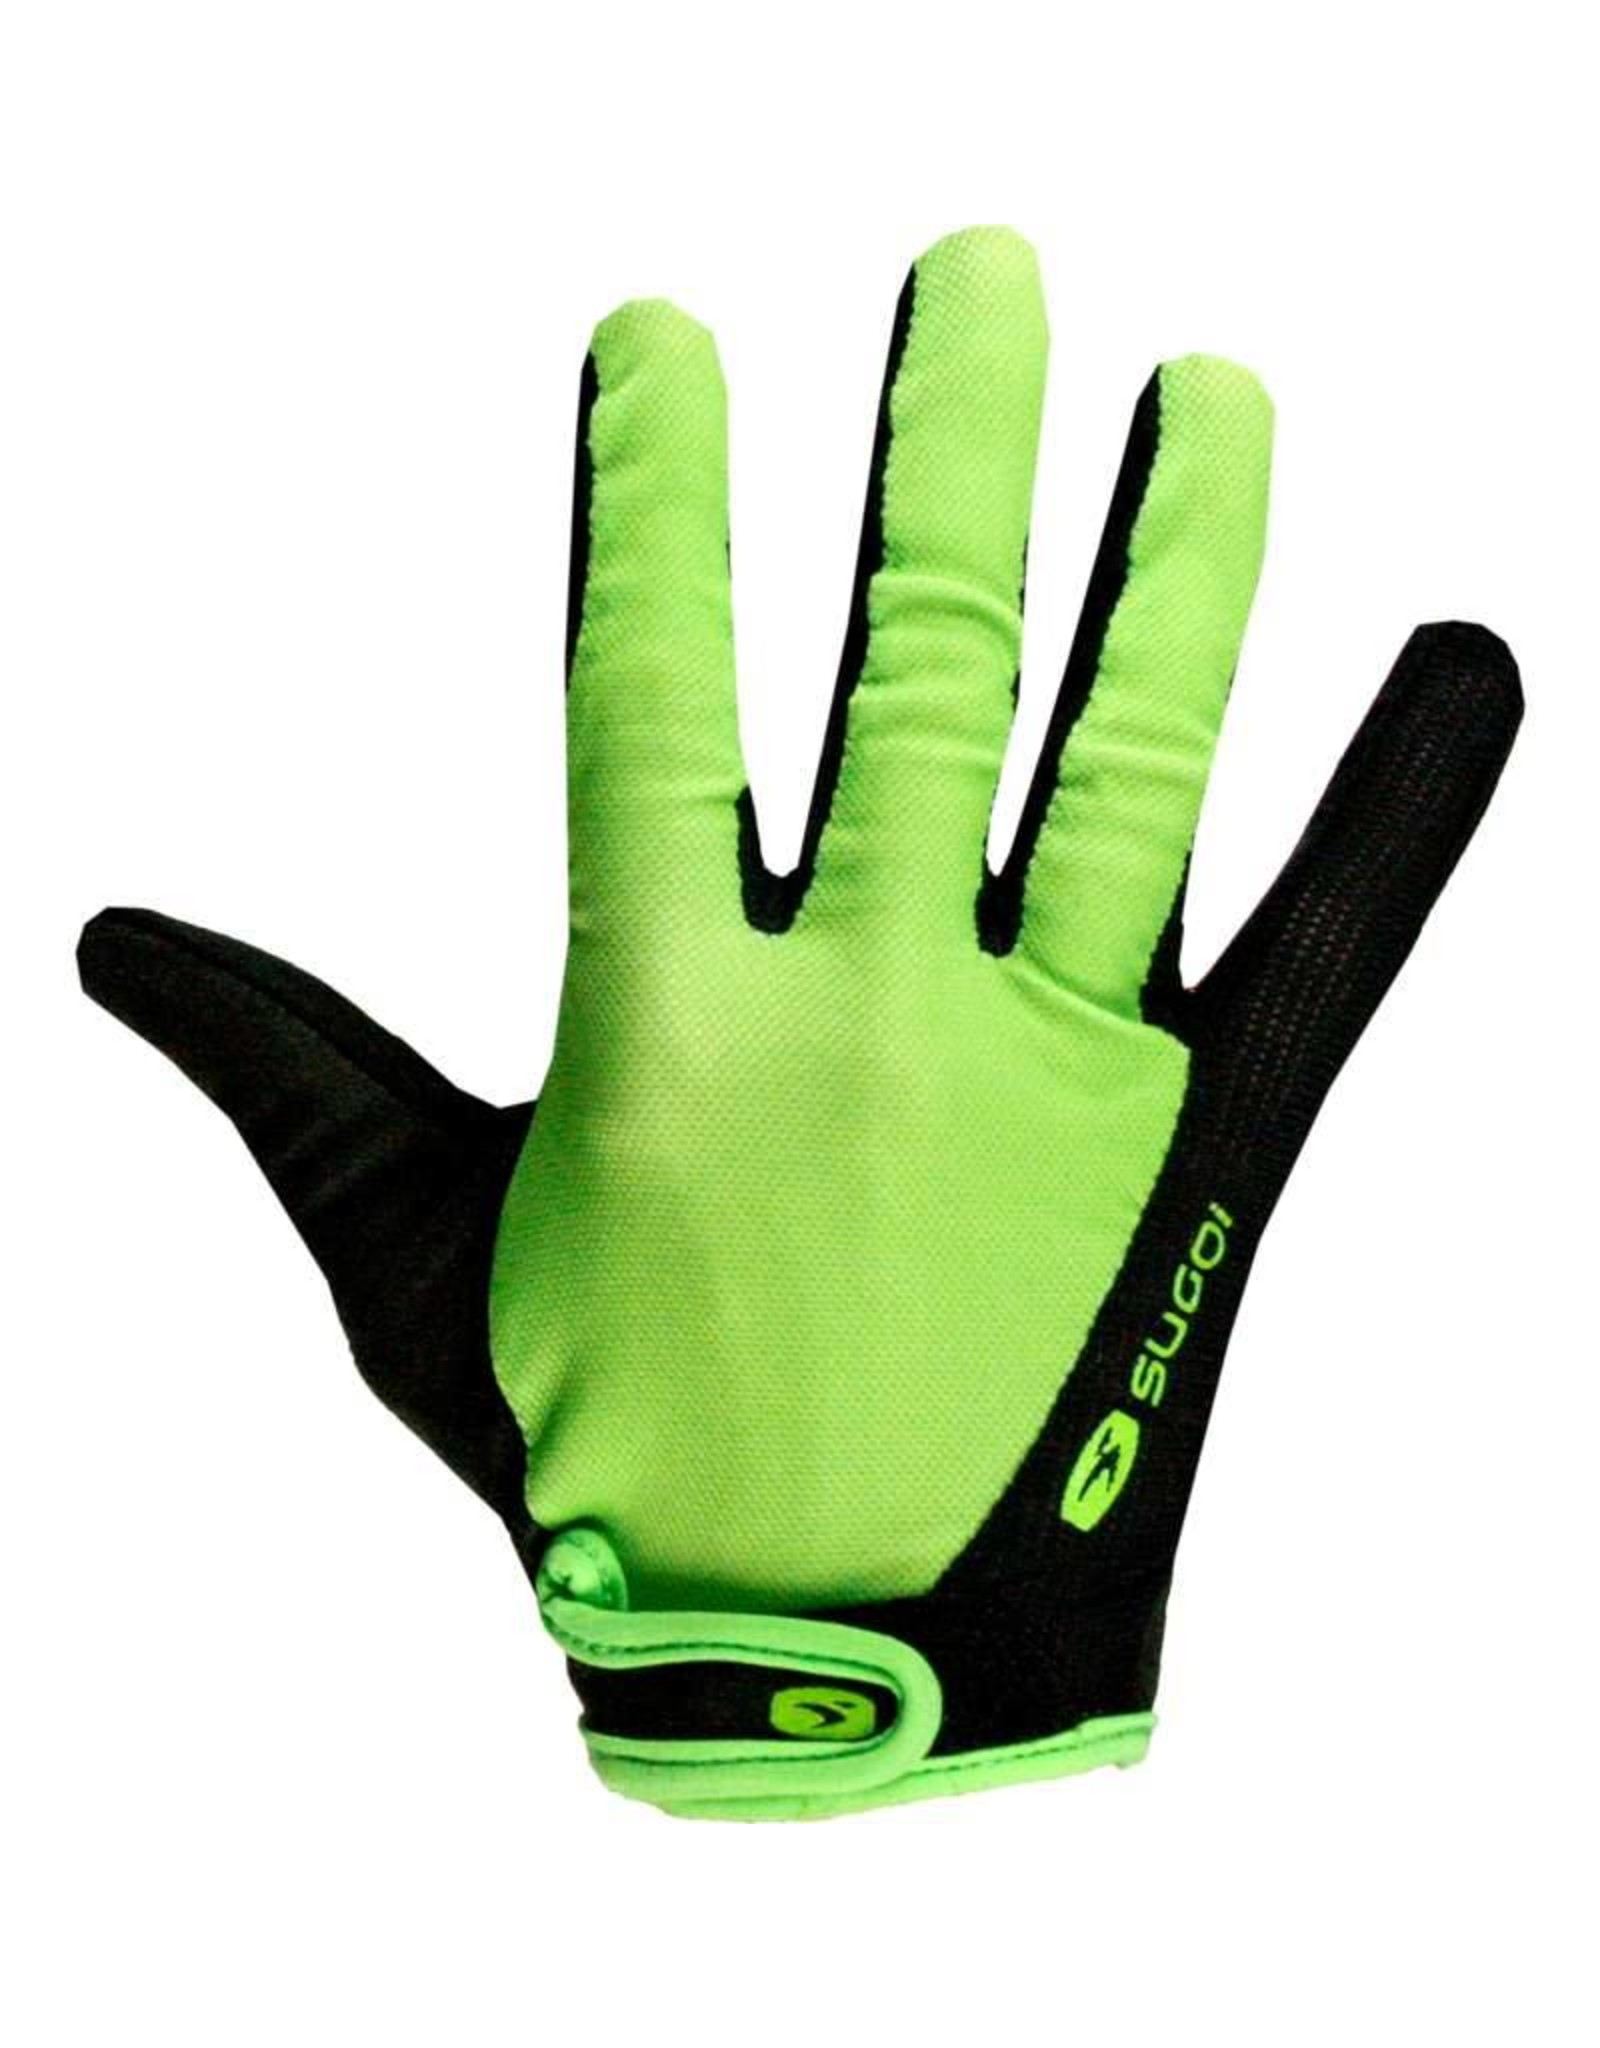 Sugoi Performance Full Glove